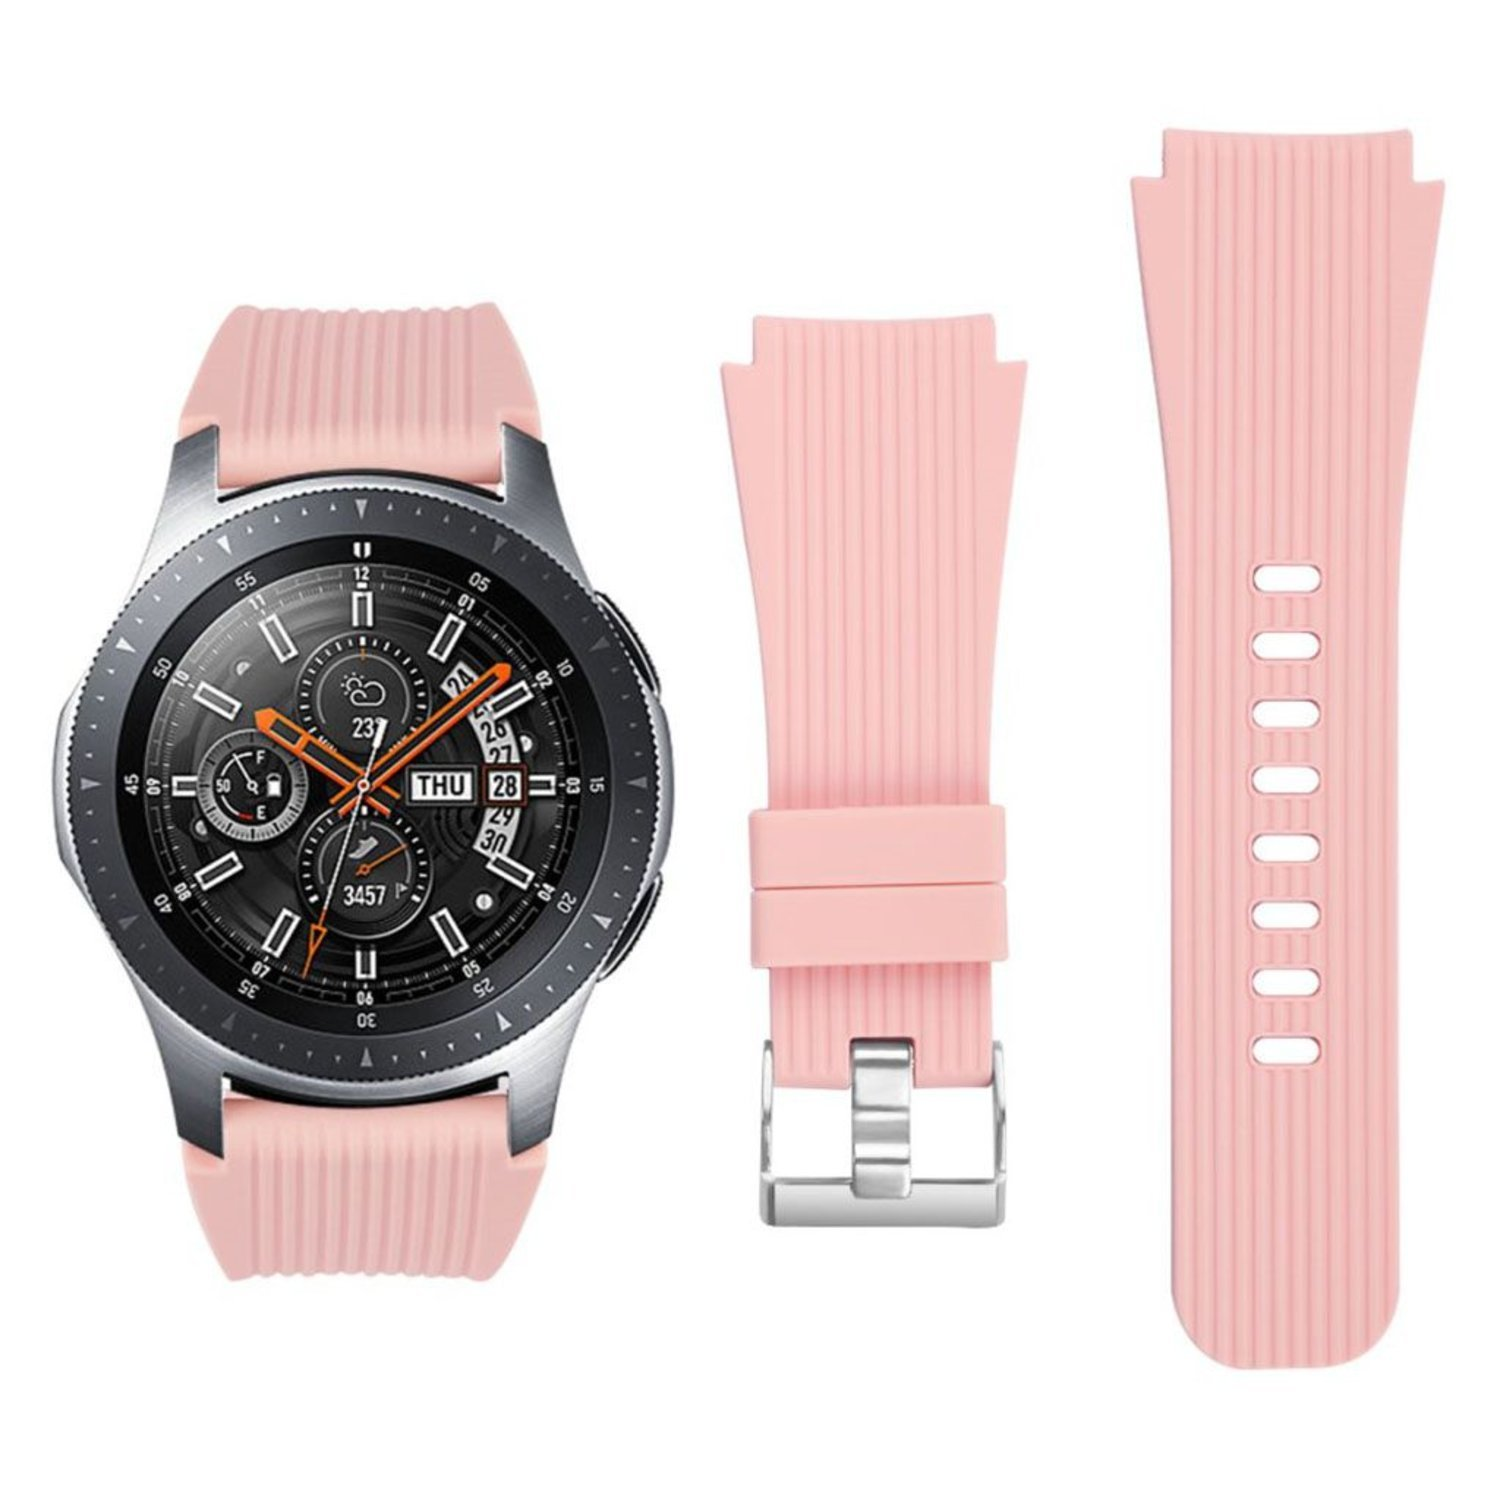 Samsung Galaxy Watch (46mm) vertical stripe texture watch ba